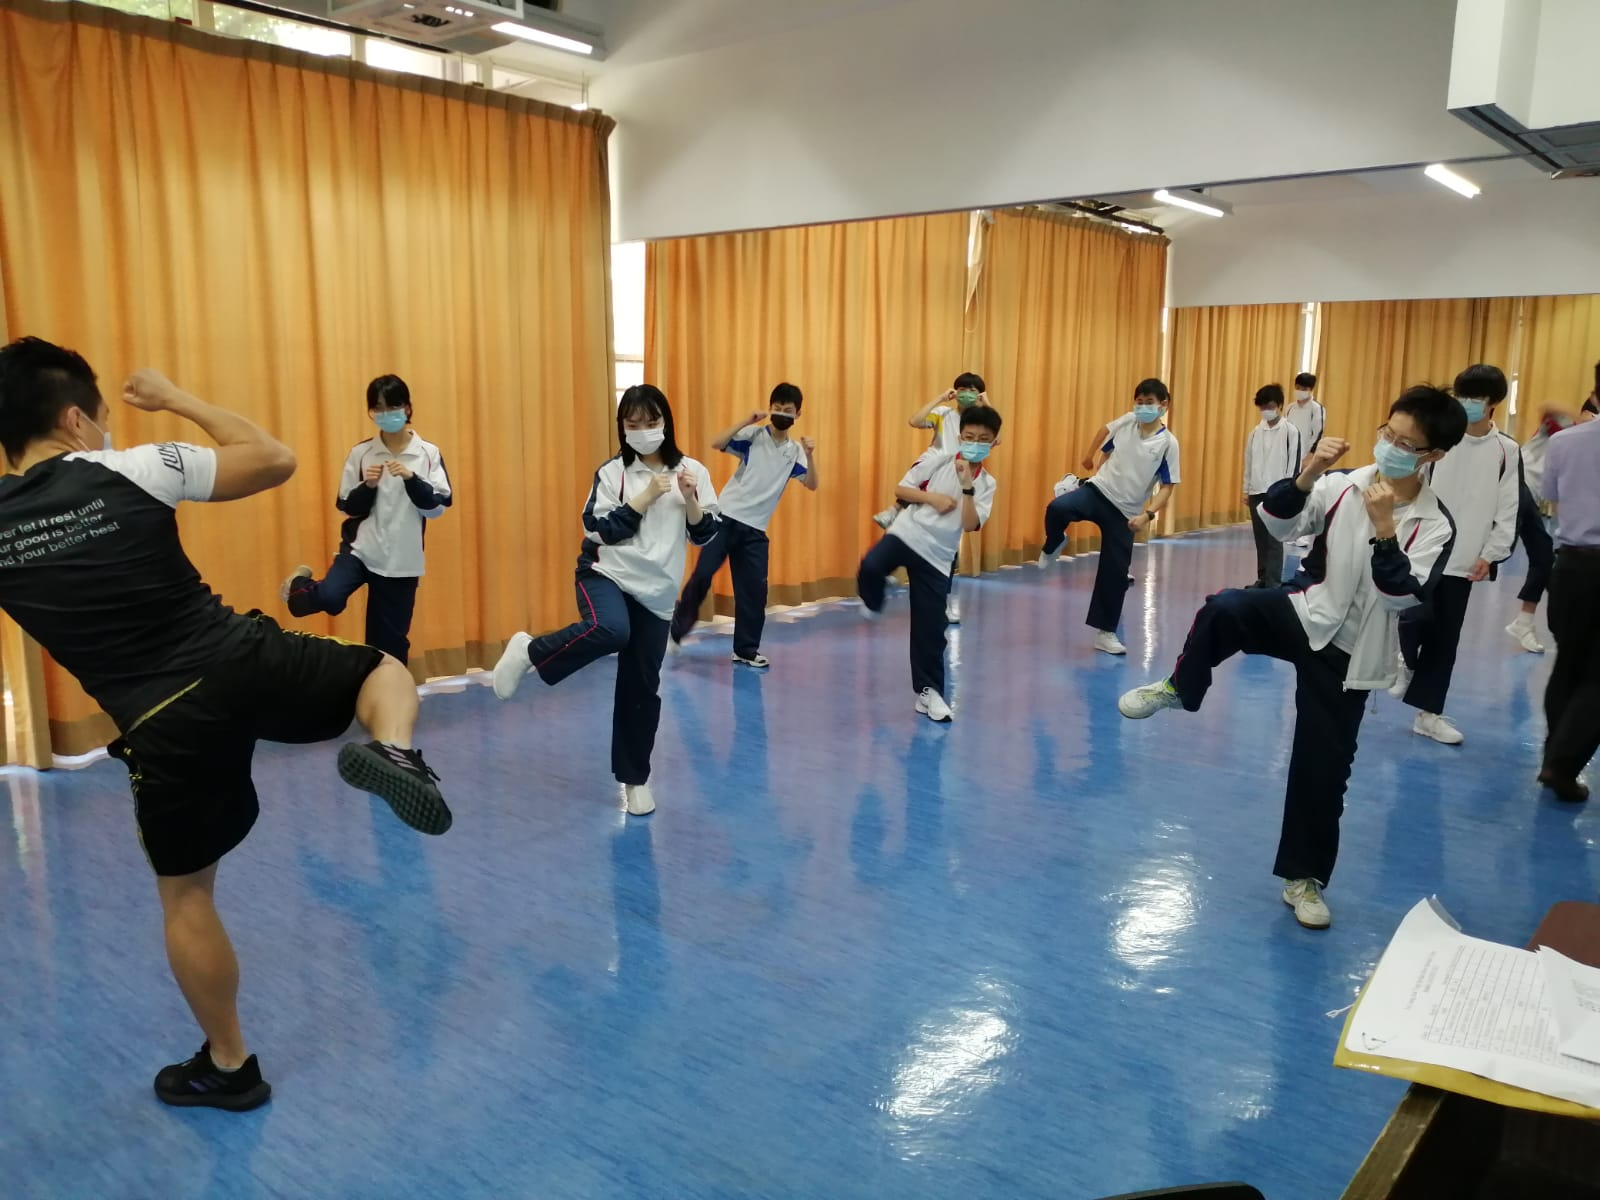 Mr. Li is teaching our students some simple Thai boxing techniques.